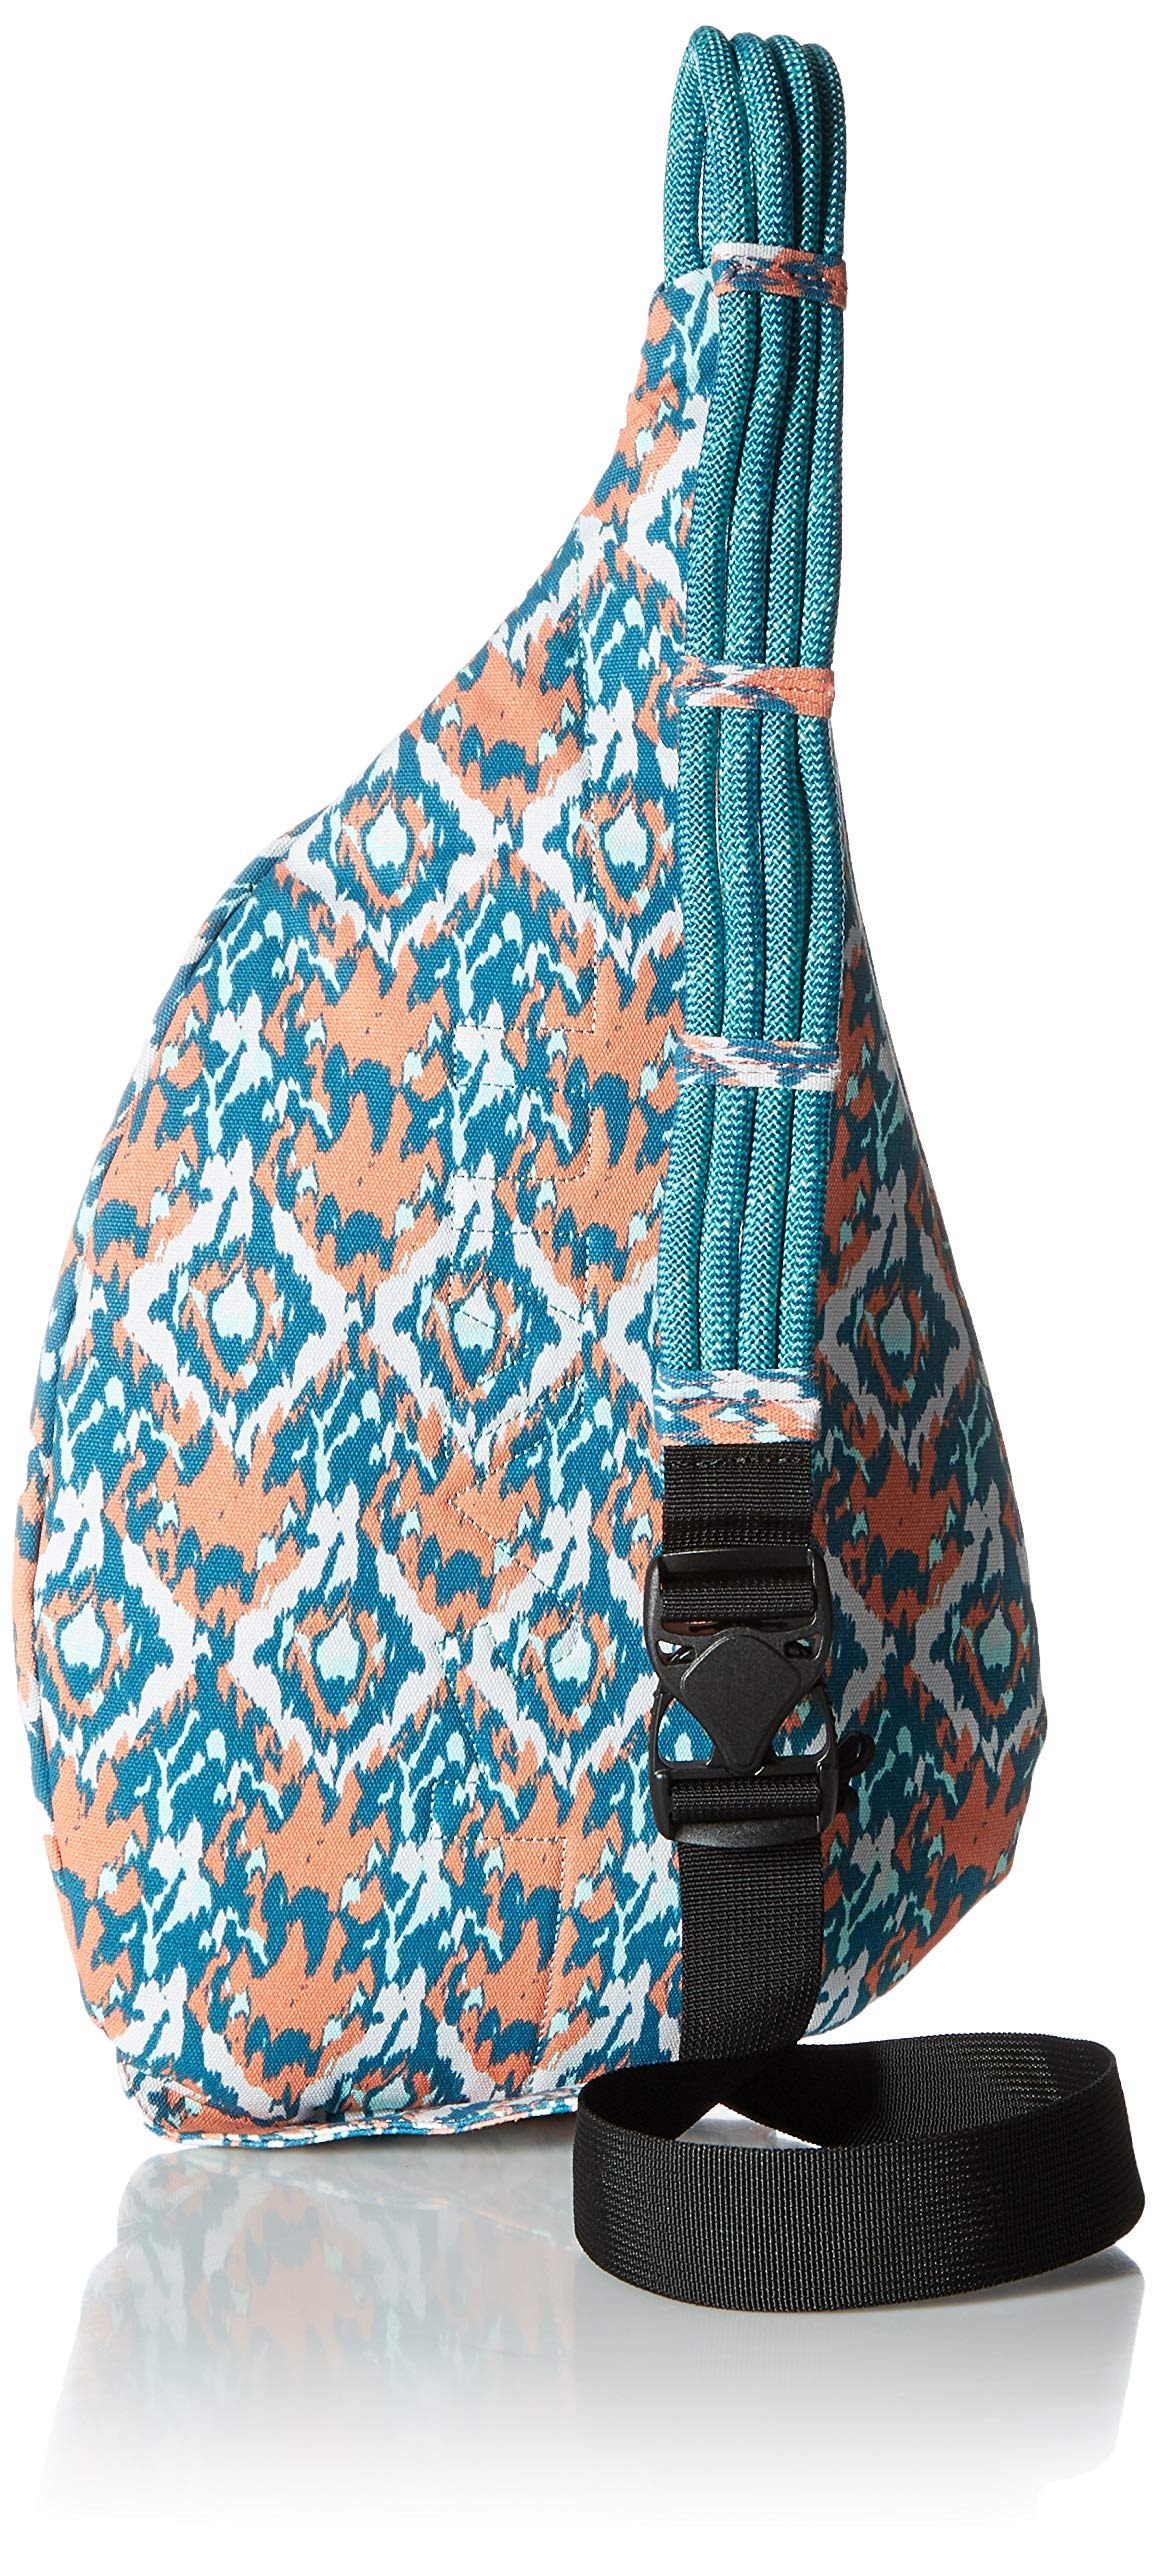 KAVU Women's Rope Bag, Beach Paint, No Size by KAVU (Image #2)